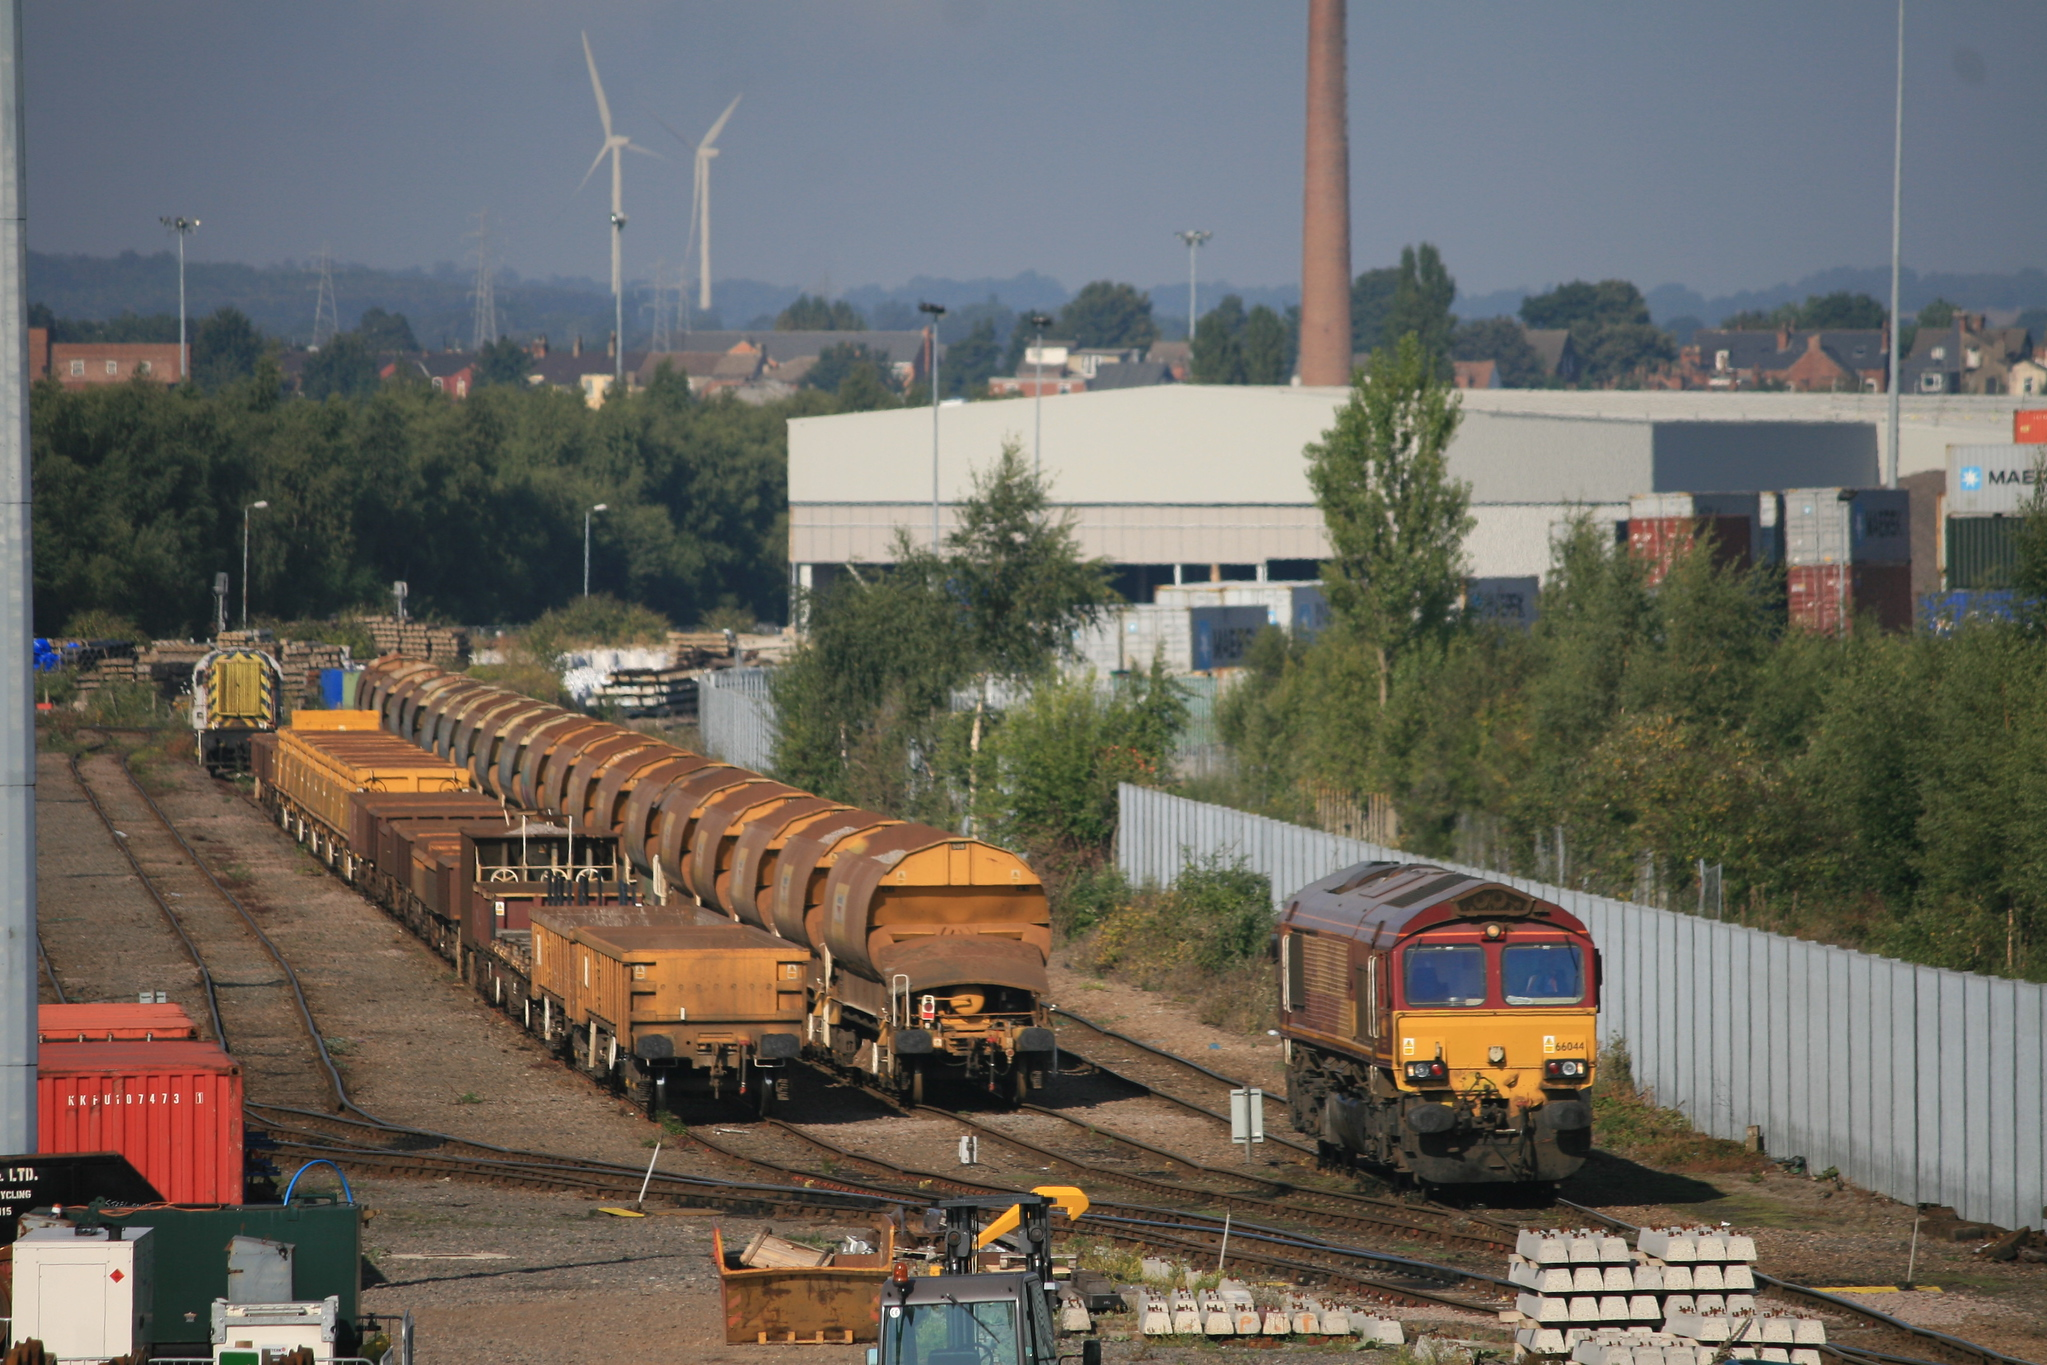 66044_Doncaster_20092015 (76)_DBS